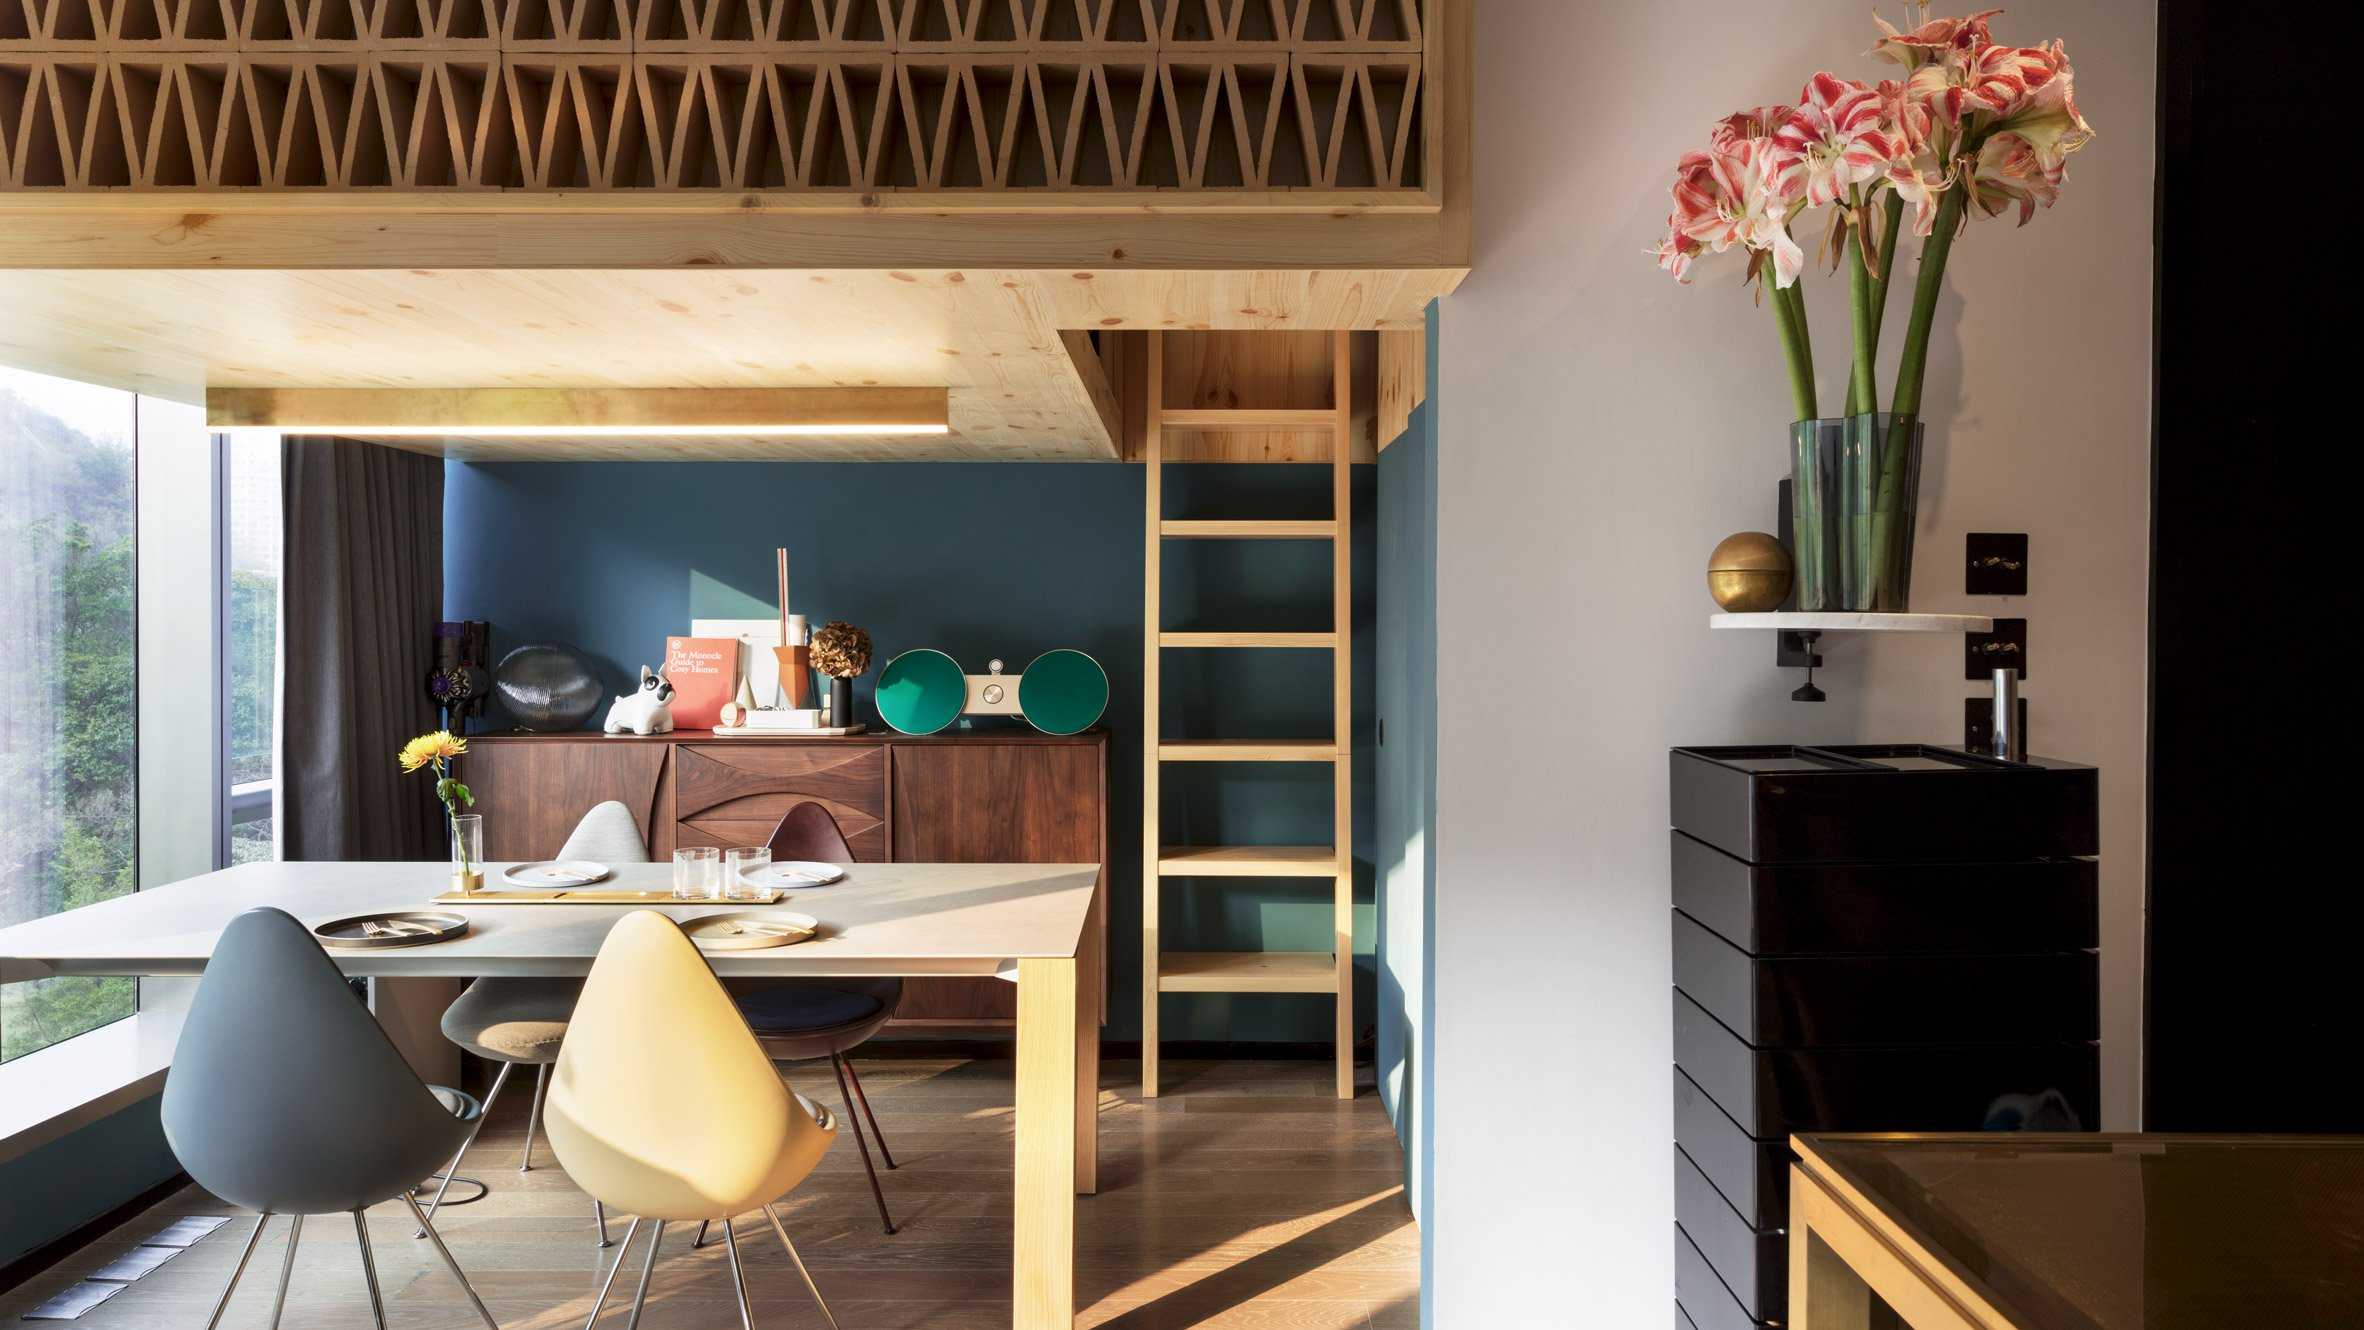 366-square-foot apartment gets space-saving renovation